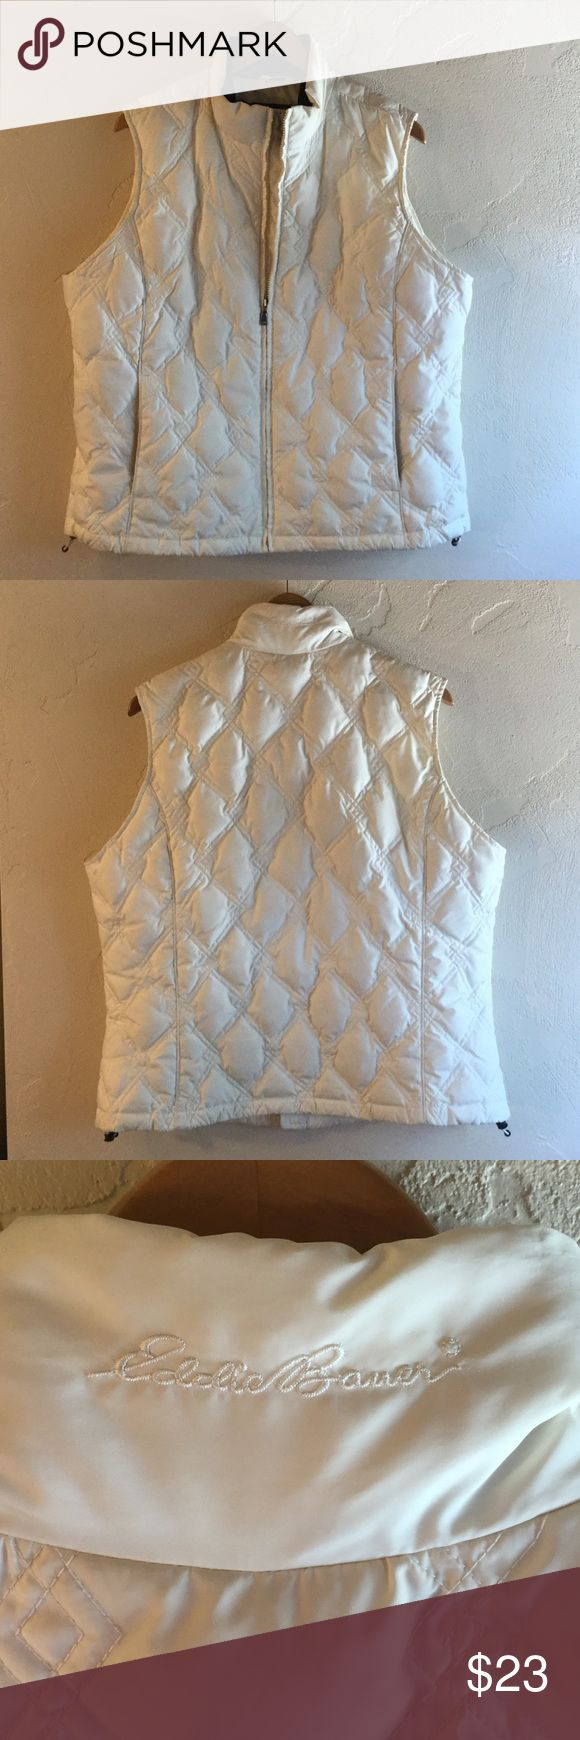 Eddie Bauer Down Filled Puffer Vest XXL This great Eddy Bauer goose down puffer vest is just such a staple piece for the cold weather months. I love it because I think winter whites are so chic! The quilting pattern is so unique and it holds all those little bits of down fluff in place, keeping you cozy all the while. I also love that while it's a puffer it is not super bulky! There are signs of wear. I laundered it myself. It probably needs a trip to the dry cleaners to remove a tiny light…